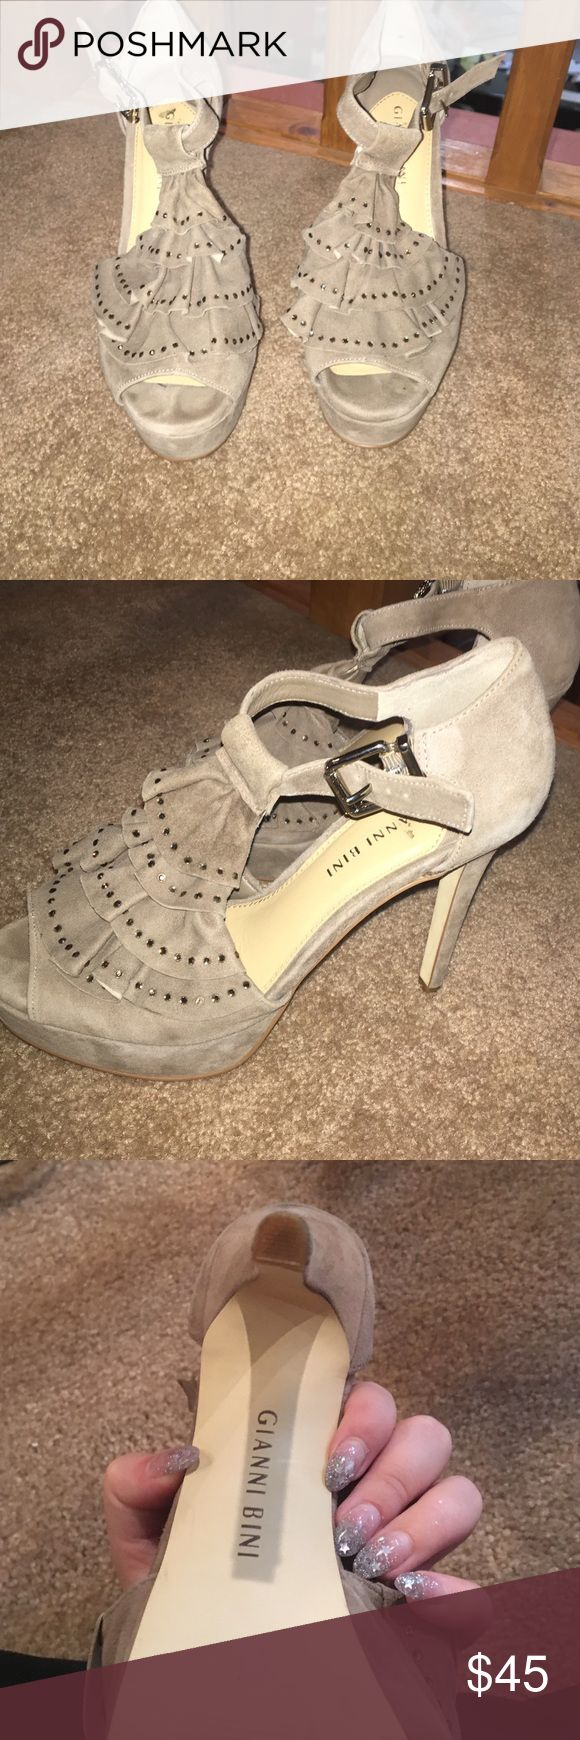 Size 7 suede Gianni Bini heels Beautiful, comfy & goes with about everything. Worn a couple of times, purchased at DILLARDS. Great for summer and winter Gianni Bini Shoes Heels